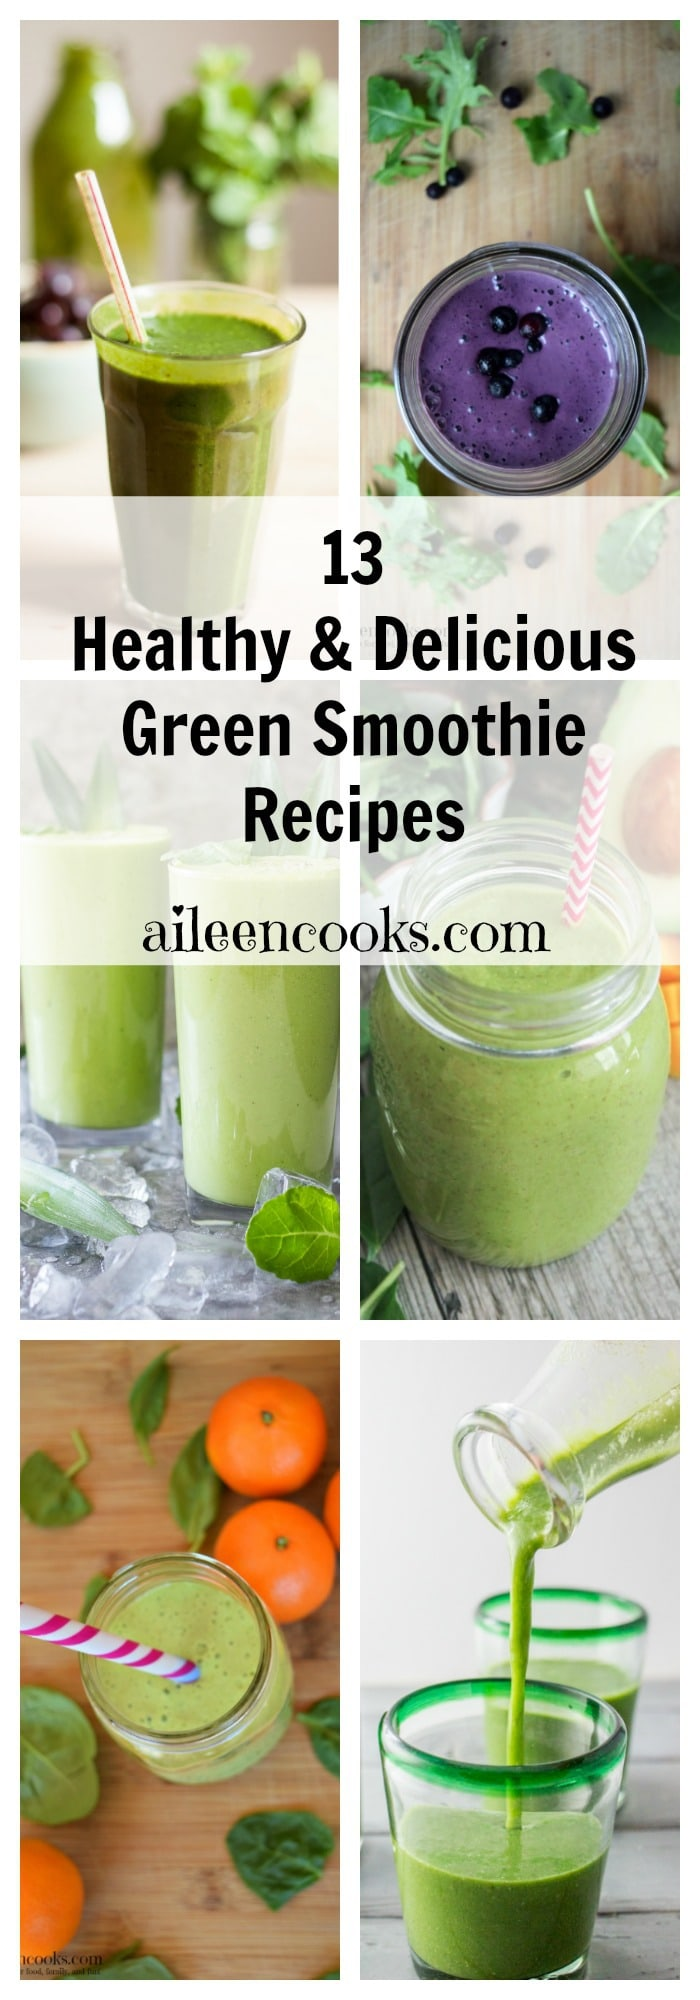 13 healthy green smoothies. Kale green smoothies. Spinach Green Smoothies. Purple Smoothies. Post from aileencooks.com.